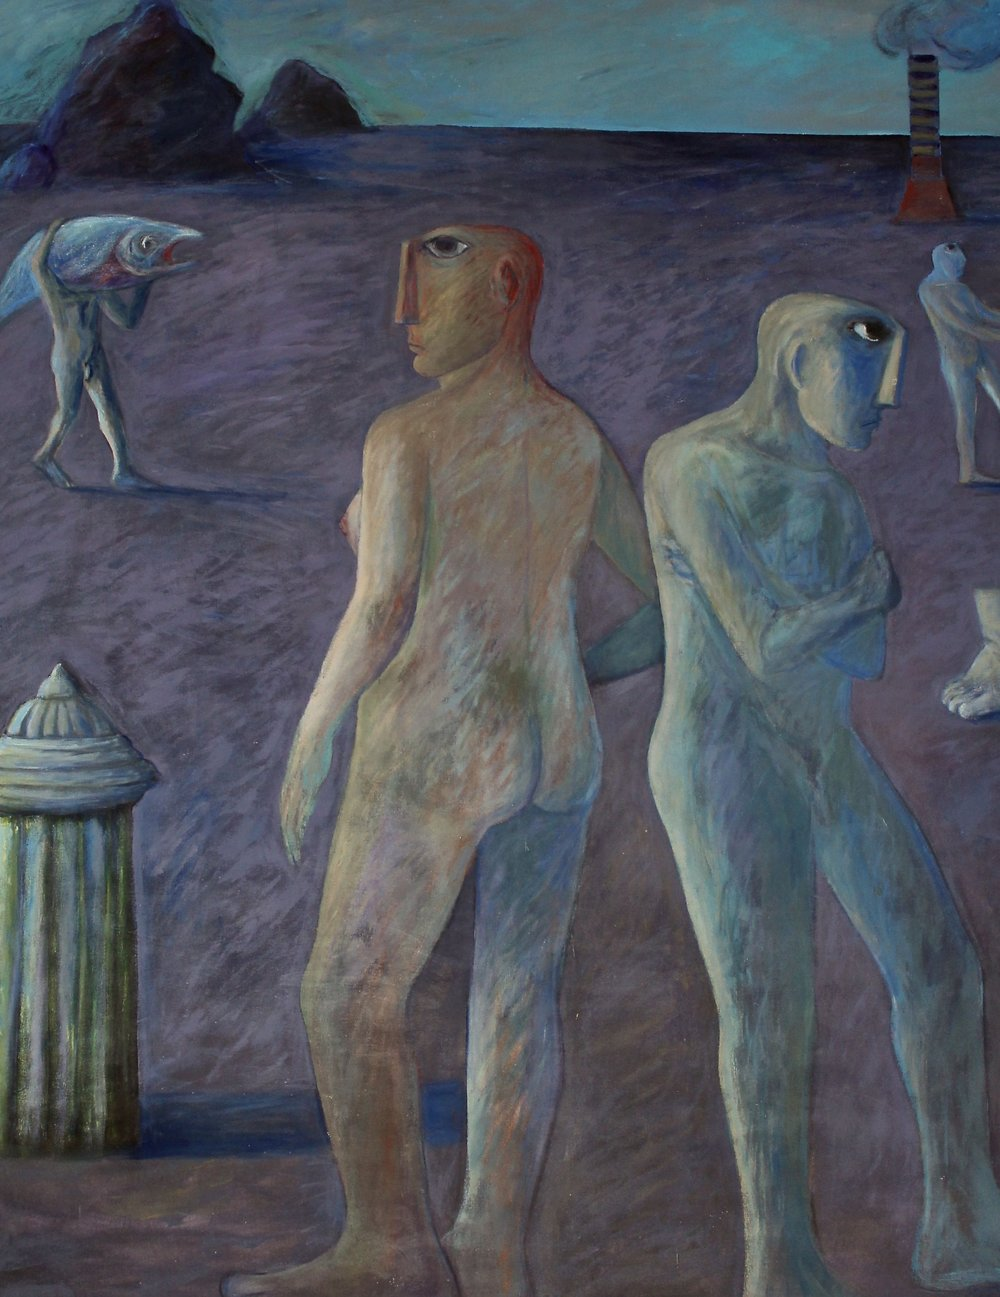 Ahmed_Morsi_Seaside_(diptych)_detail2_1995 copy.jpg